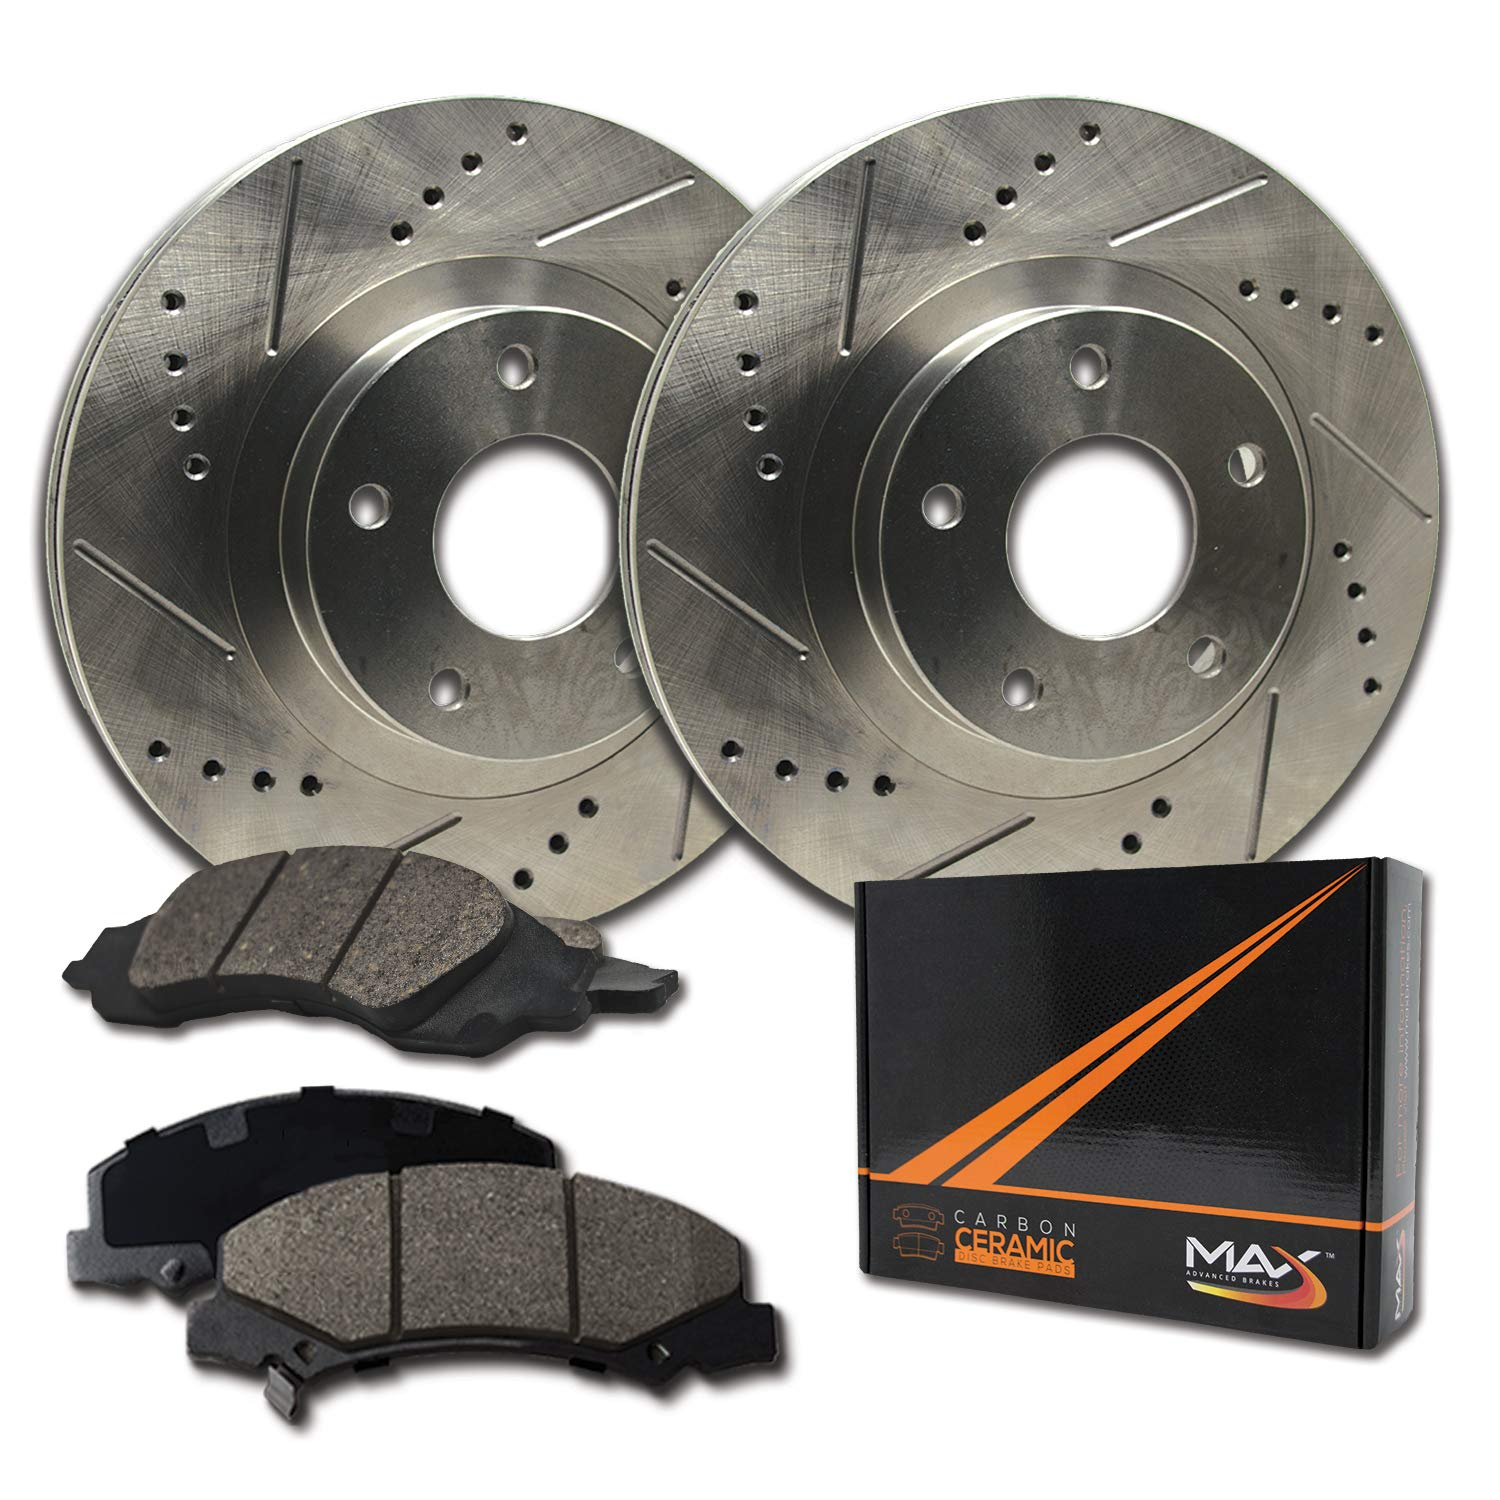 Max Brakes Front Performance Brake Kit [ Premium Slotted Drilled Rotors + Ceramic Pads ] KT039831 Fits: 2008-2015 Scion XB | 2006-2015 Toyota RAV4 | 2012-2015 Prius V by Max Advanced Brakes